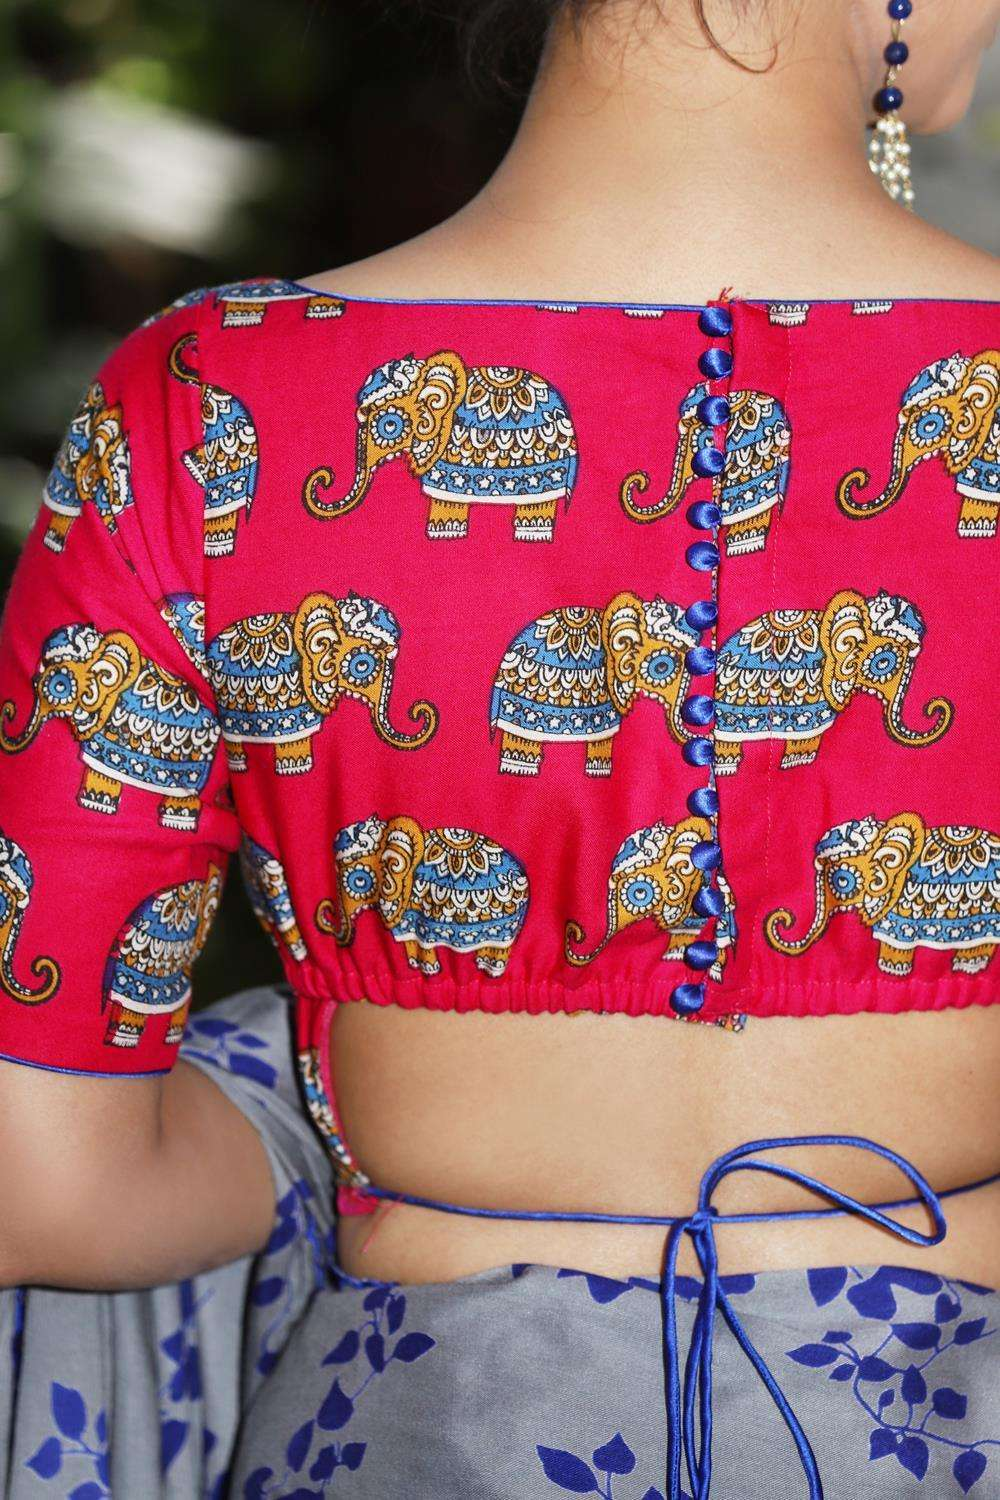 Pink rayon blouse with printed Kalamkari elephant motifs and back detailing